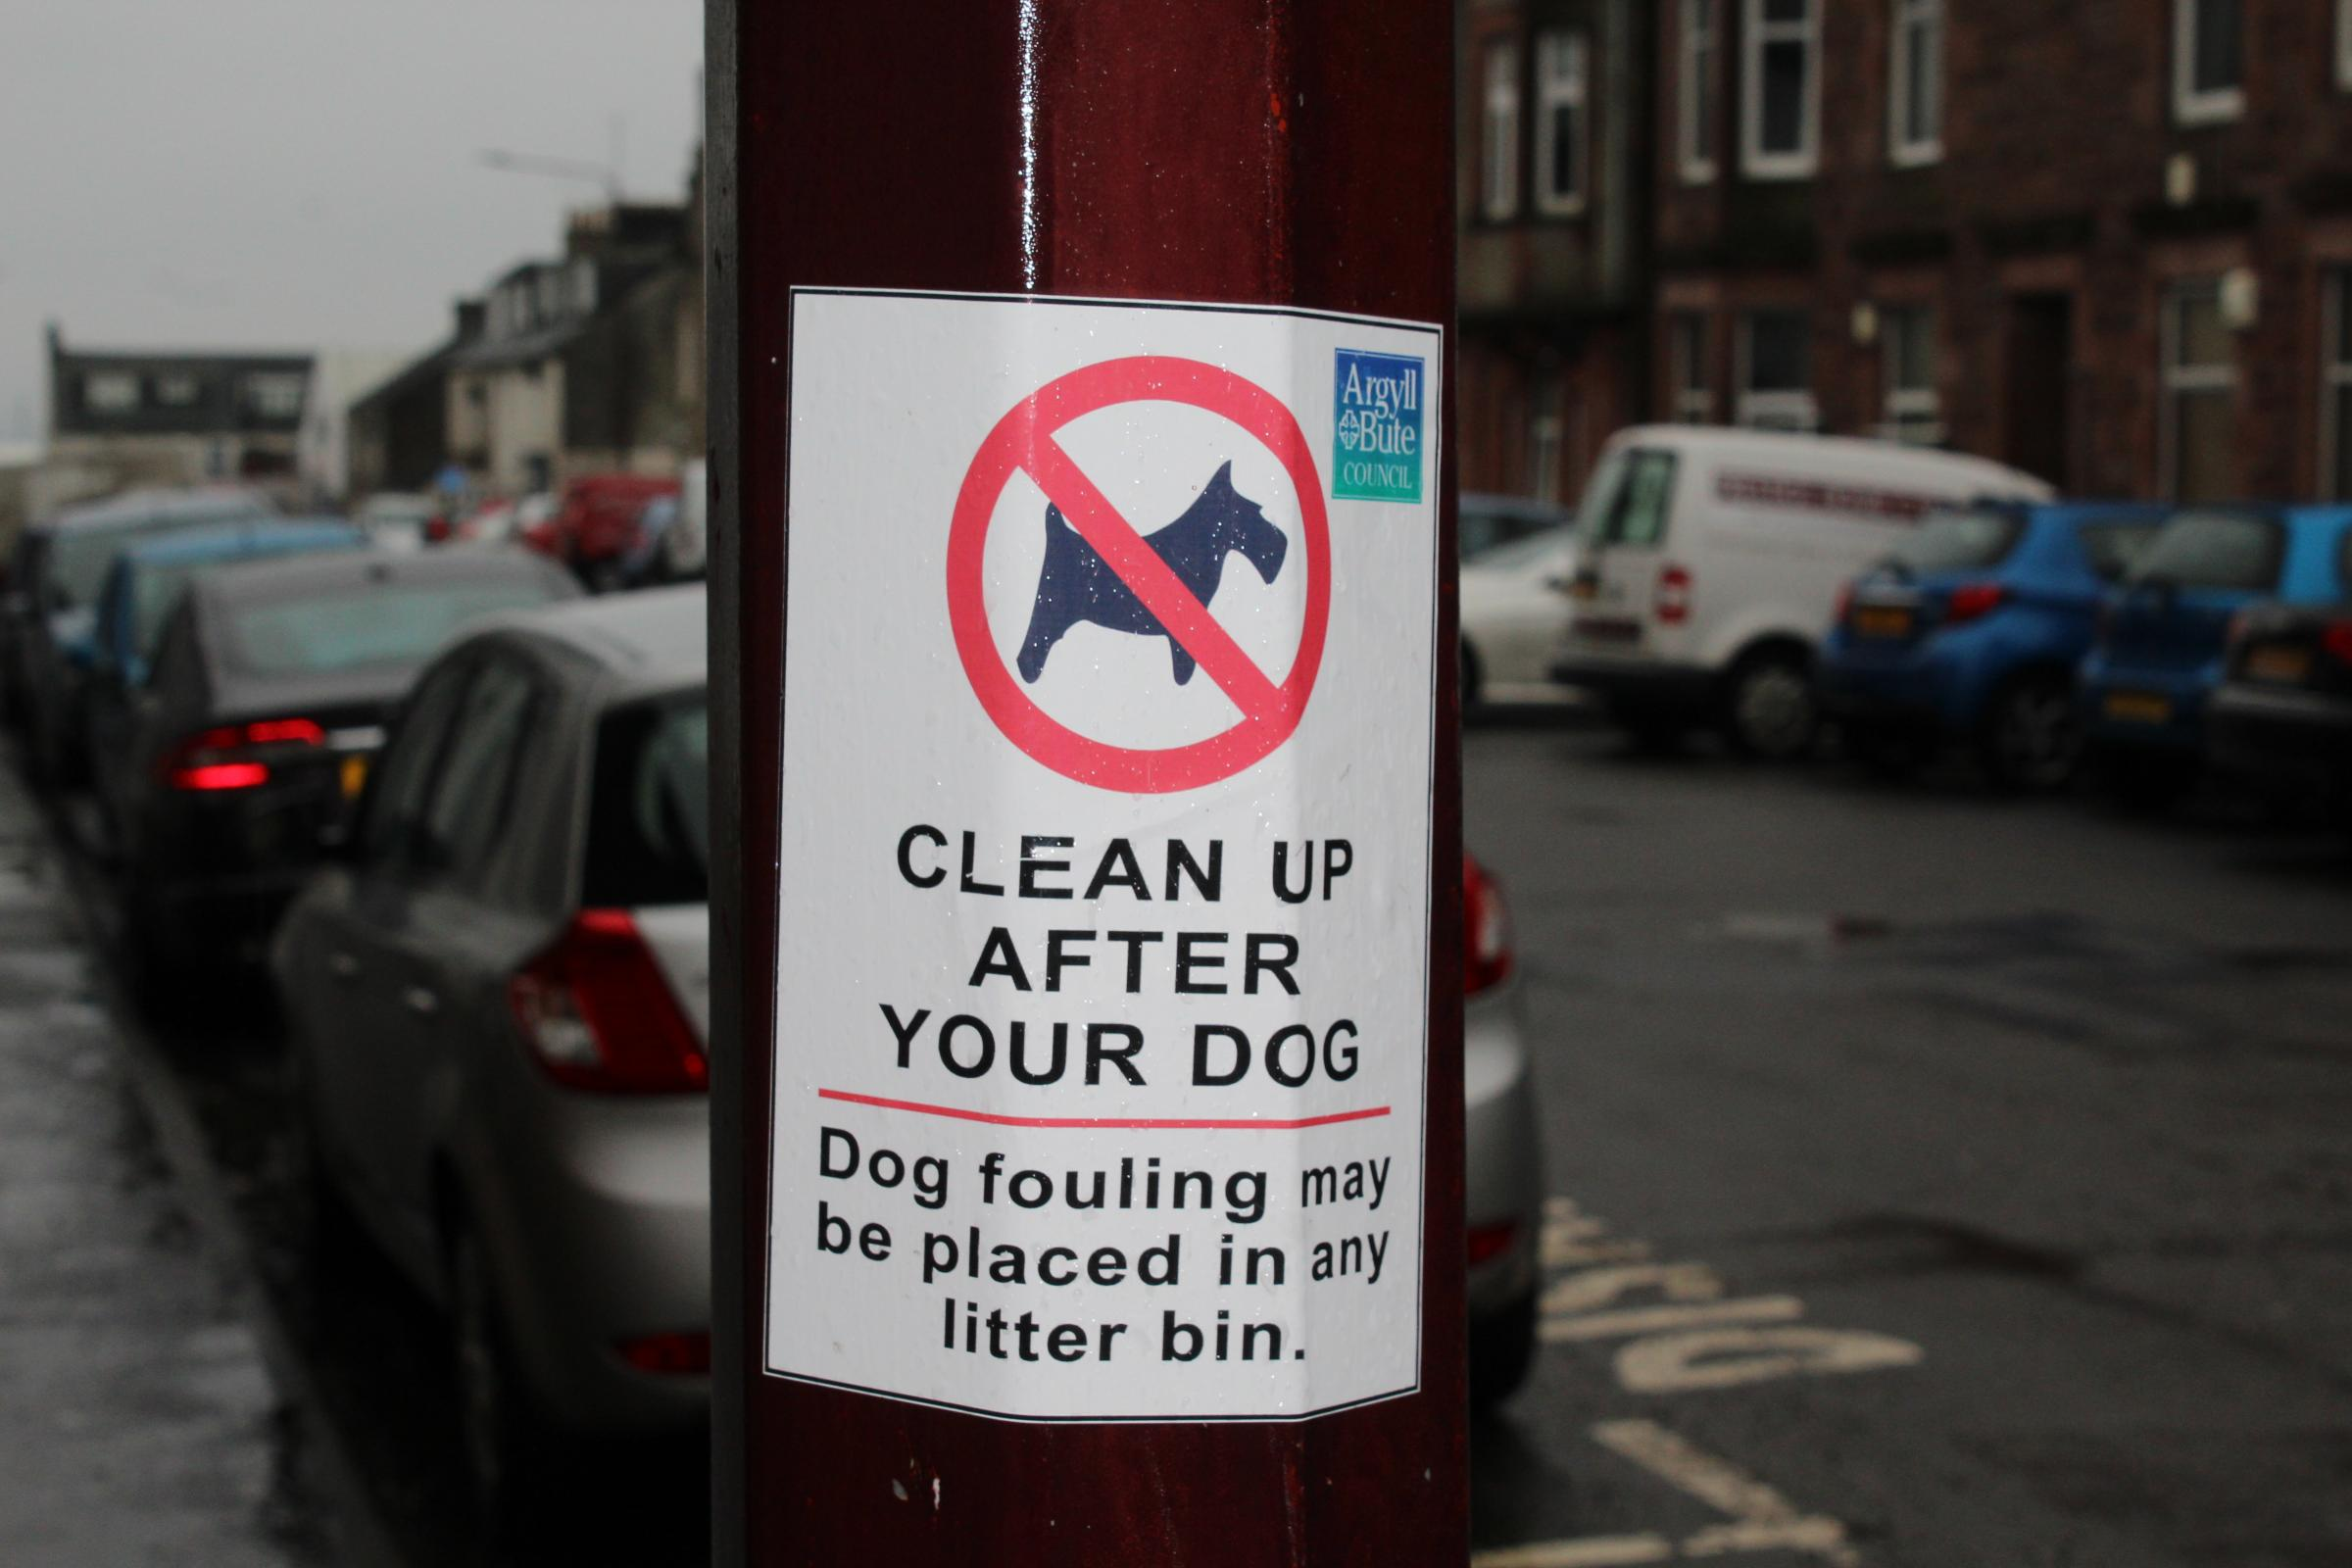 The environmental warden service's duties include handing out fixed penalties for dog fouling